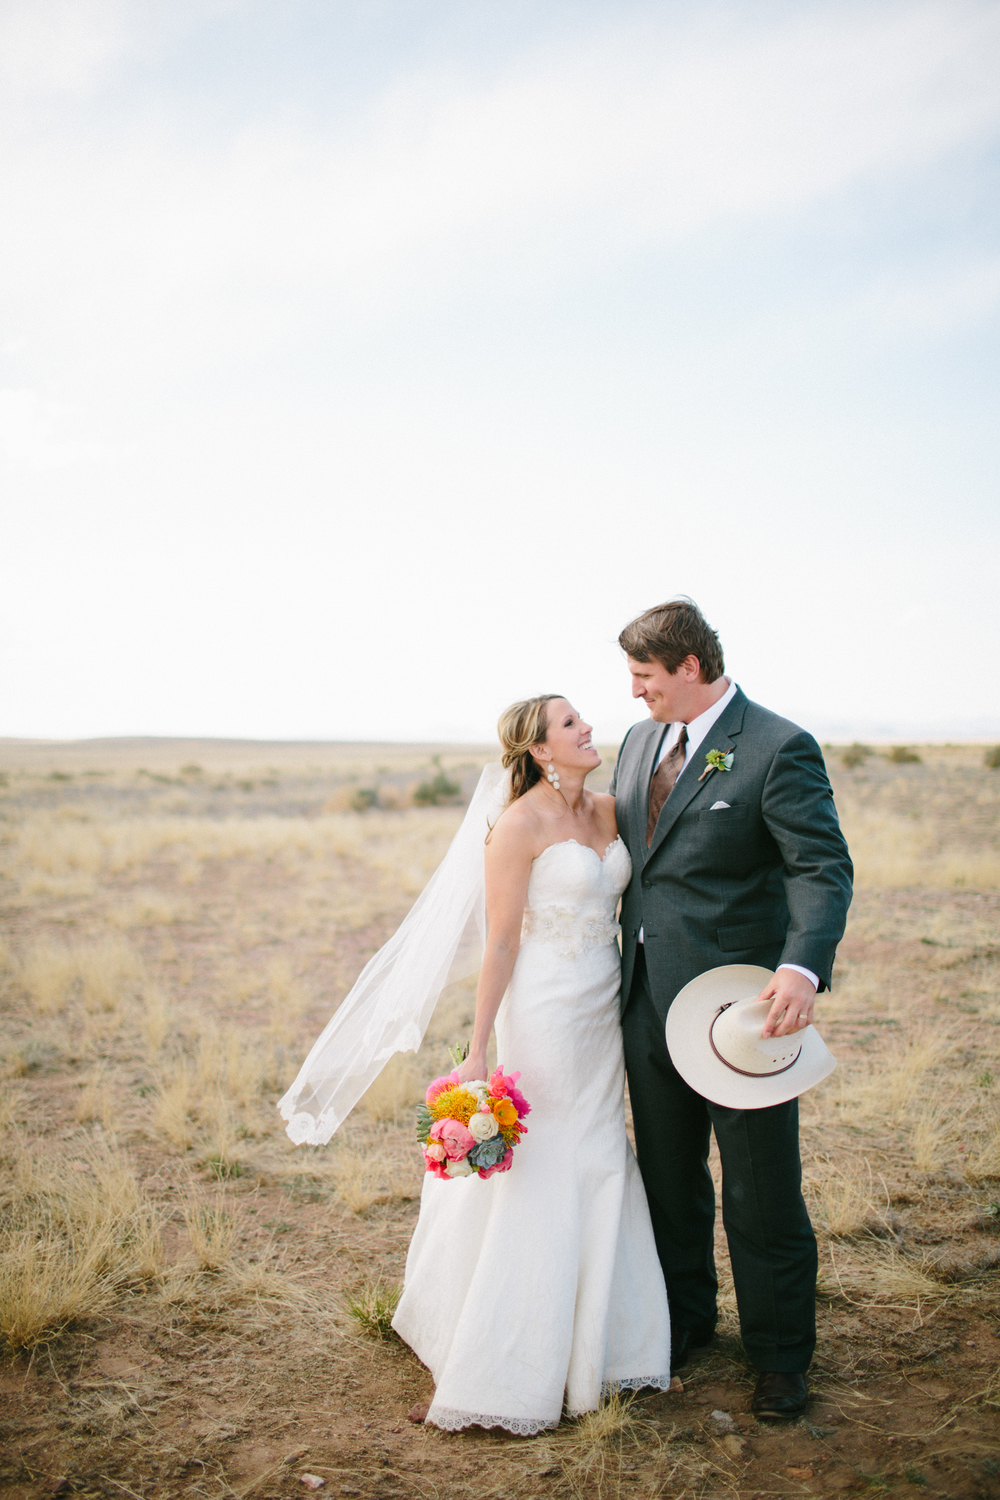 Megan_Rich_Marfa_Wedding00017.jpg